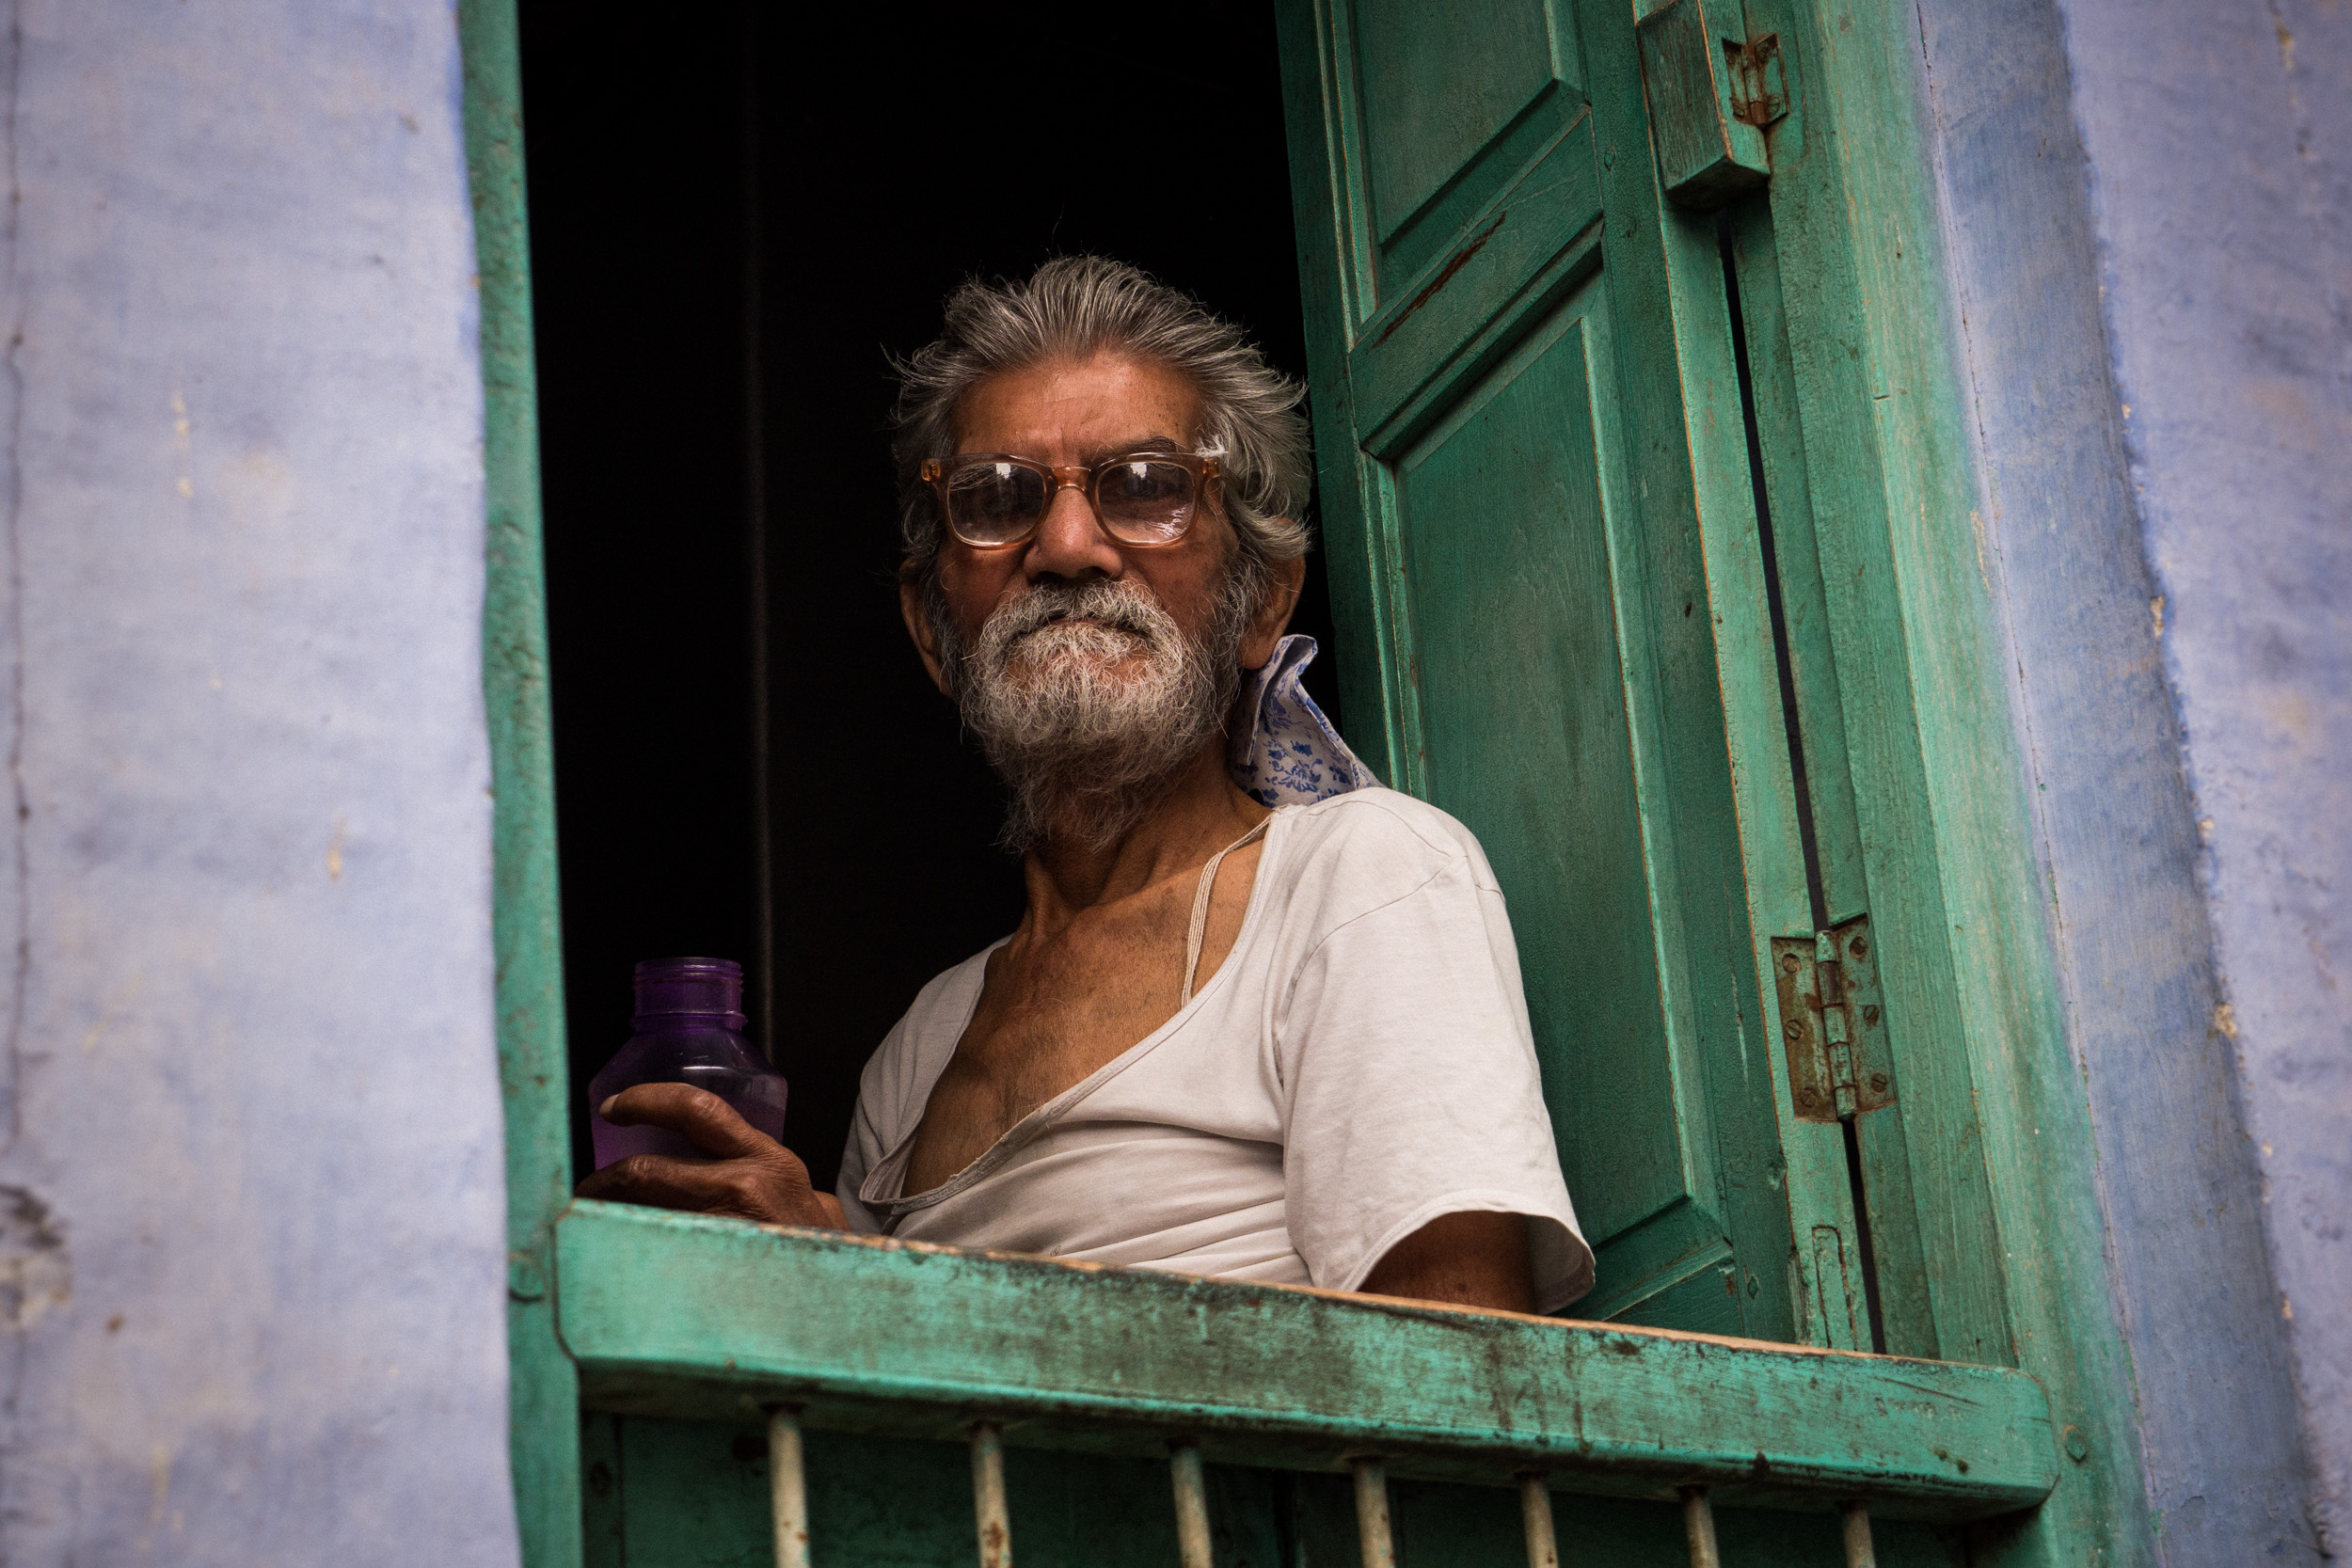 _13 Old man Sitting on Window Jogphur India.jpg